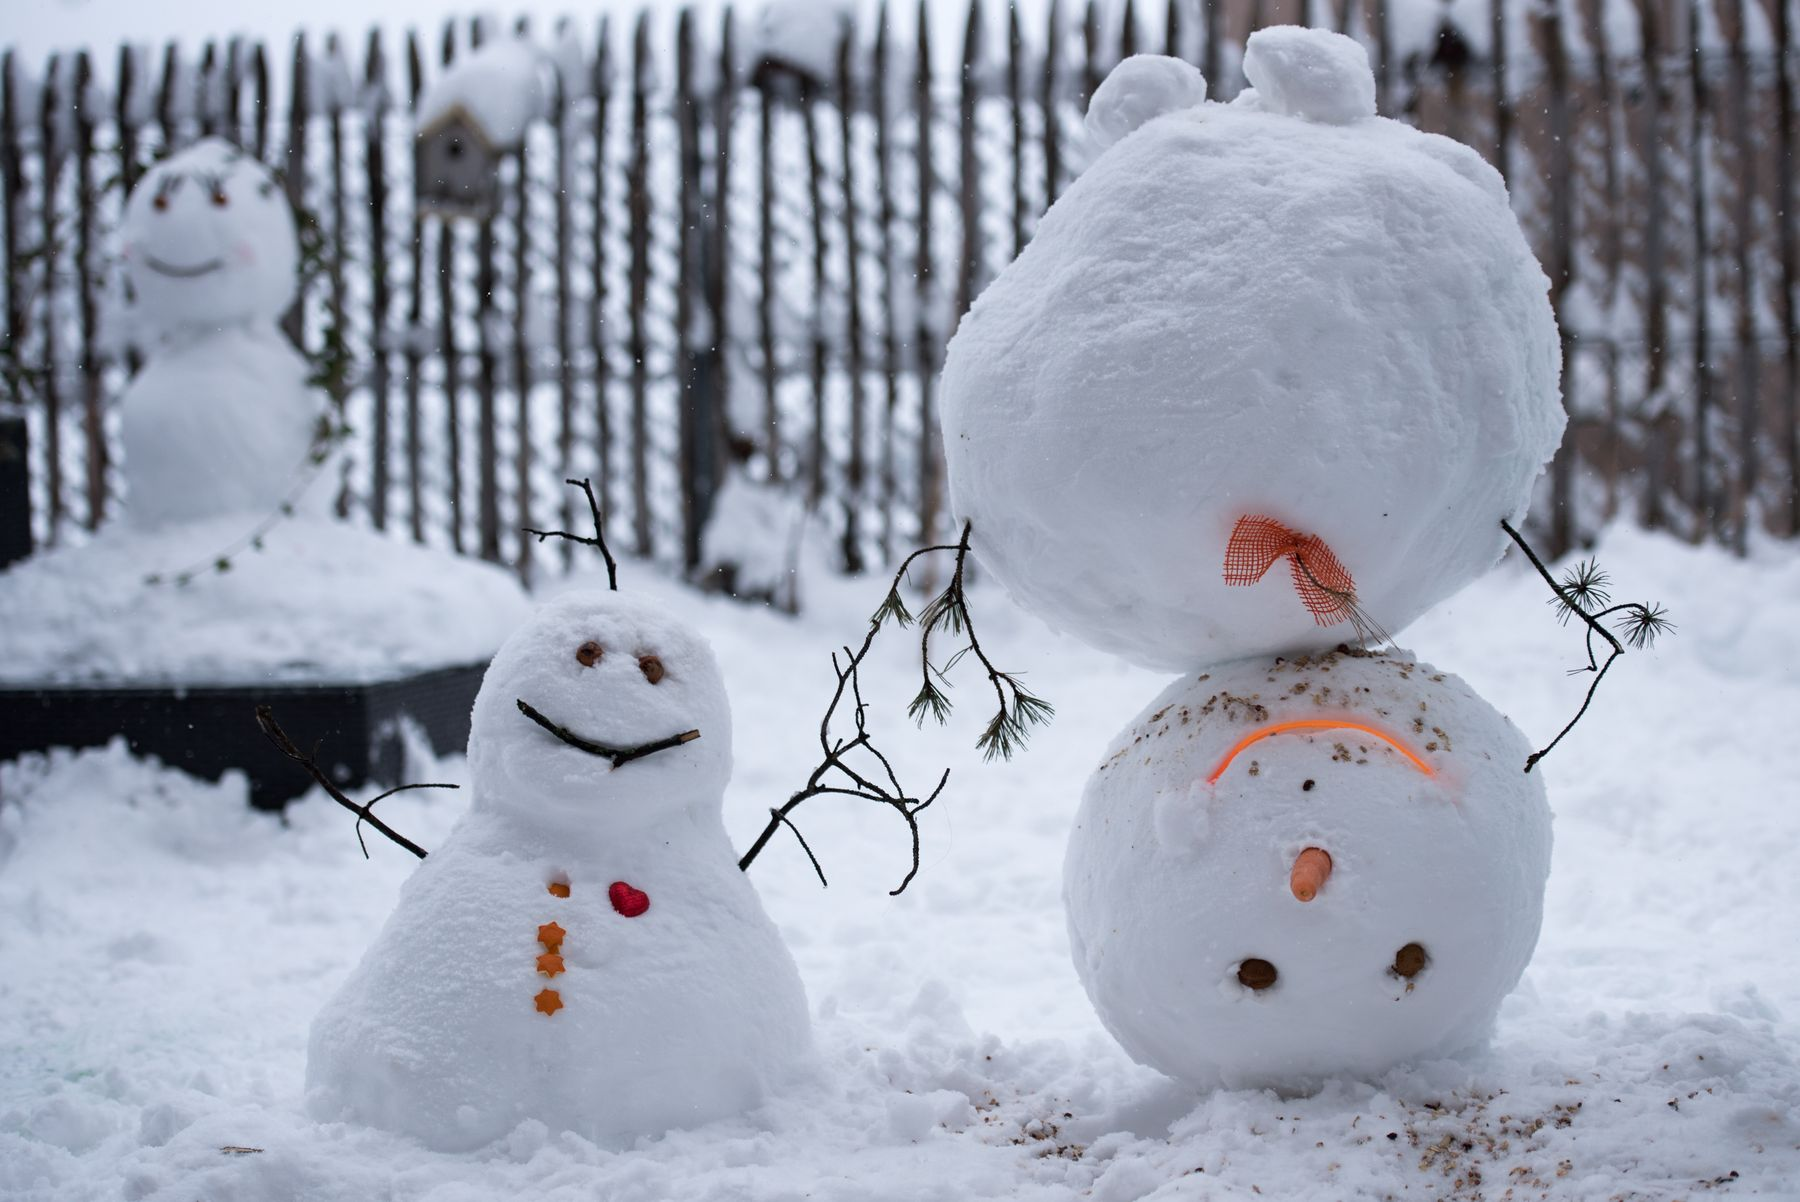 snowpeople on snowy day